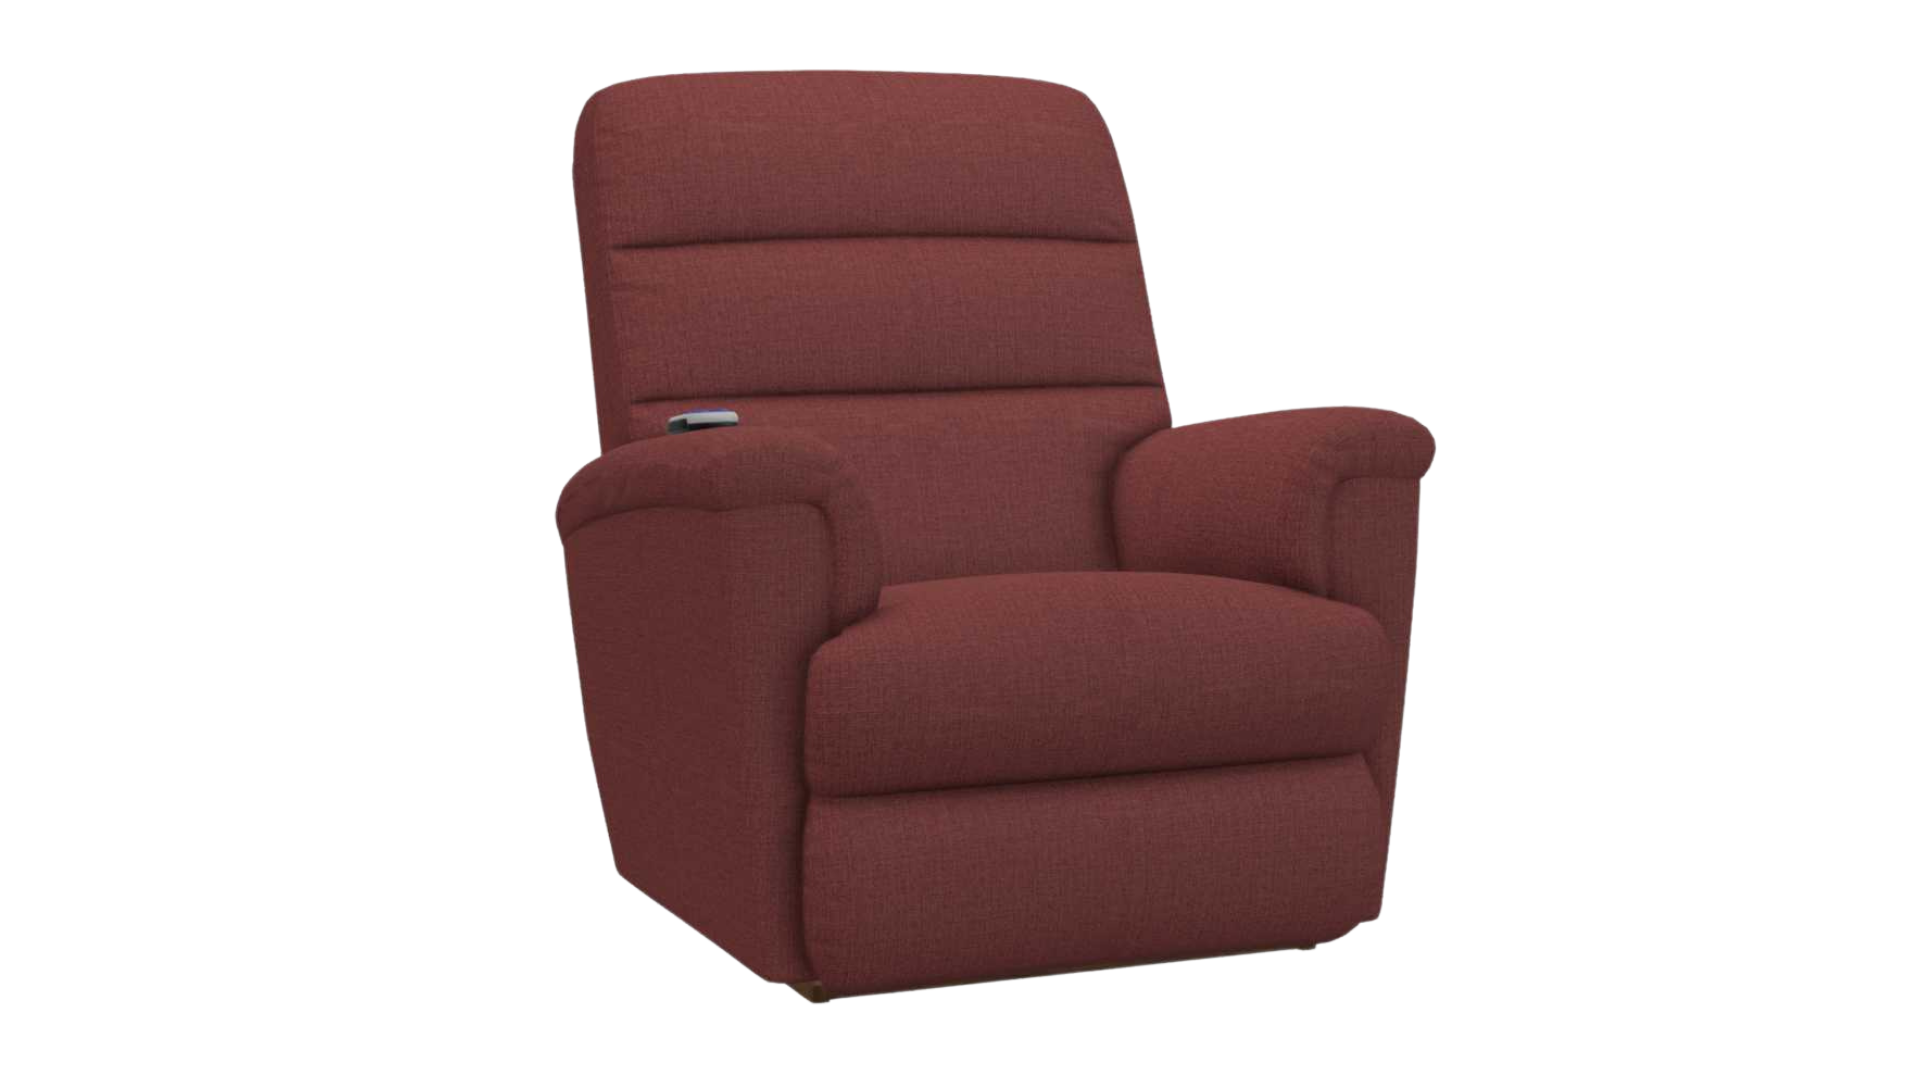 La-Z-Boy best recliners for sleeping